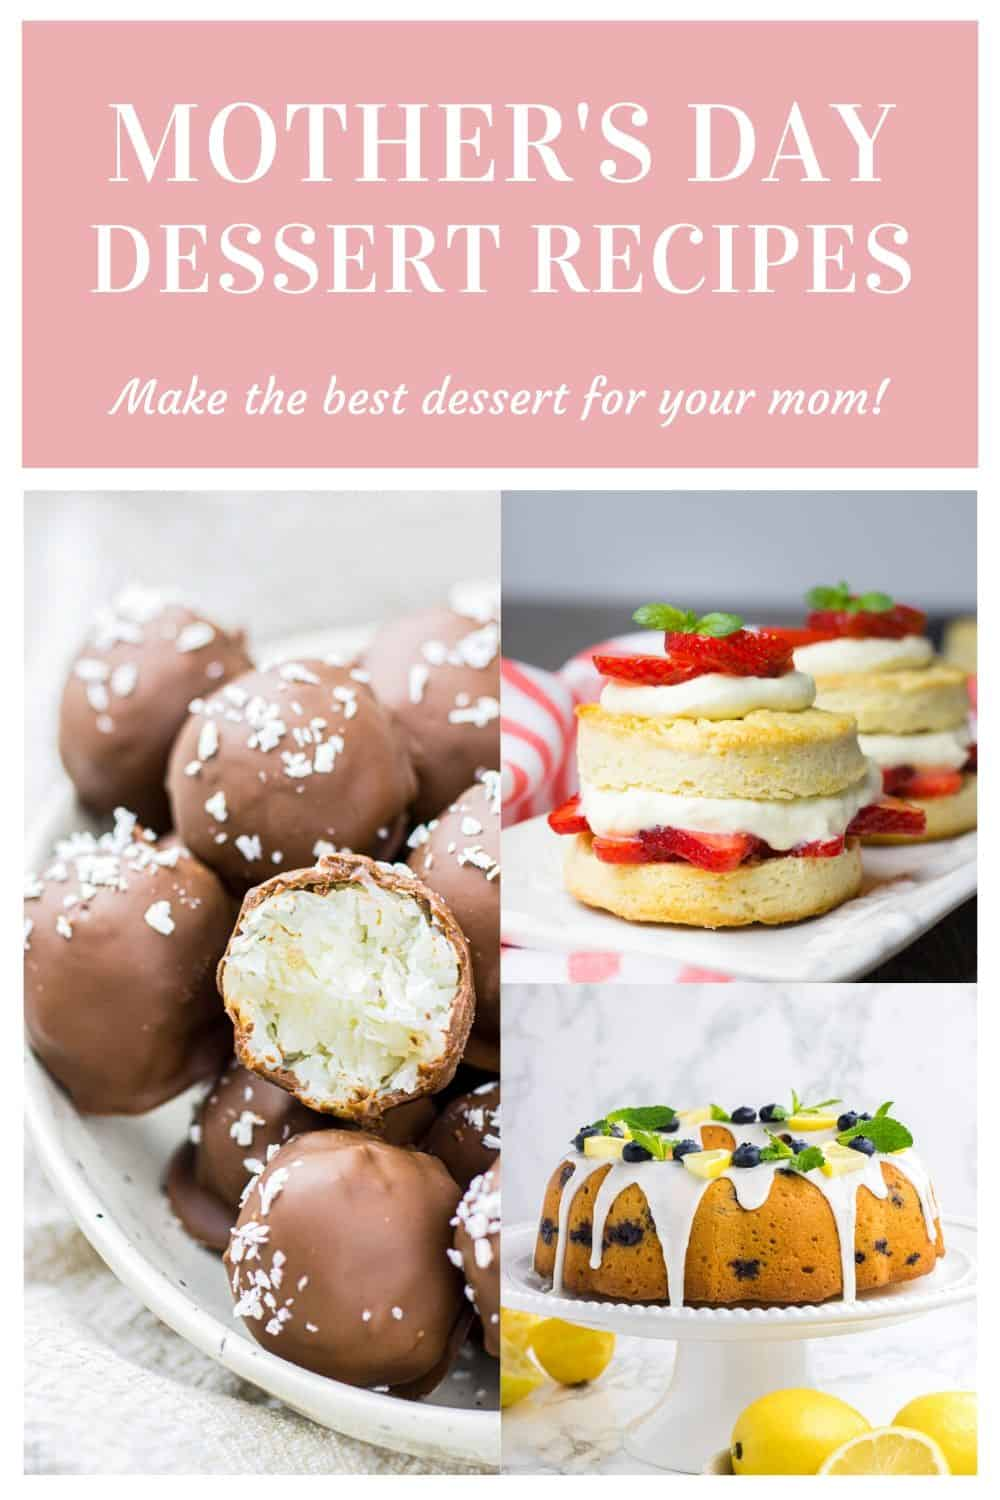 A collage of dessert recipes for Mother's Day.